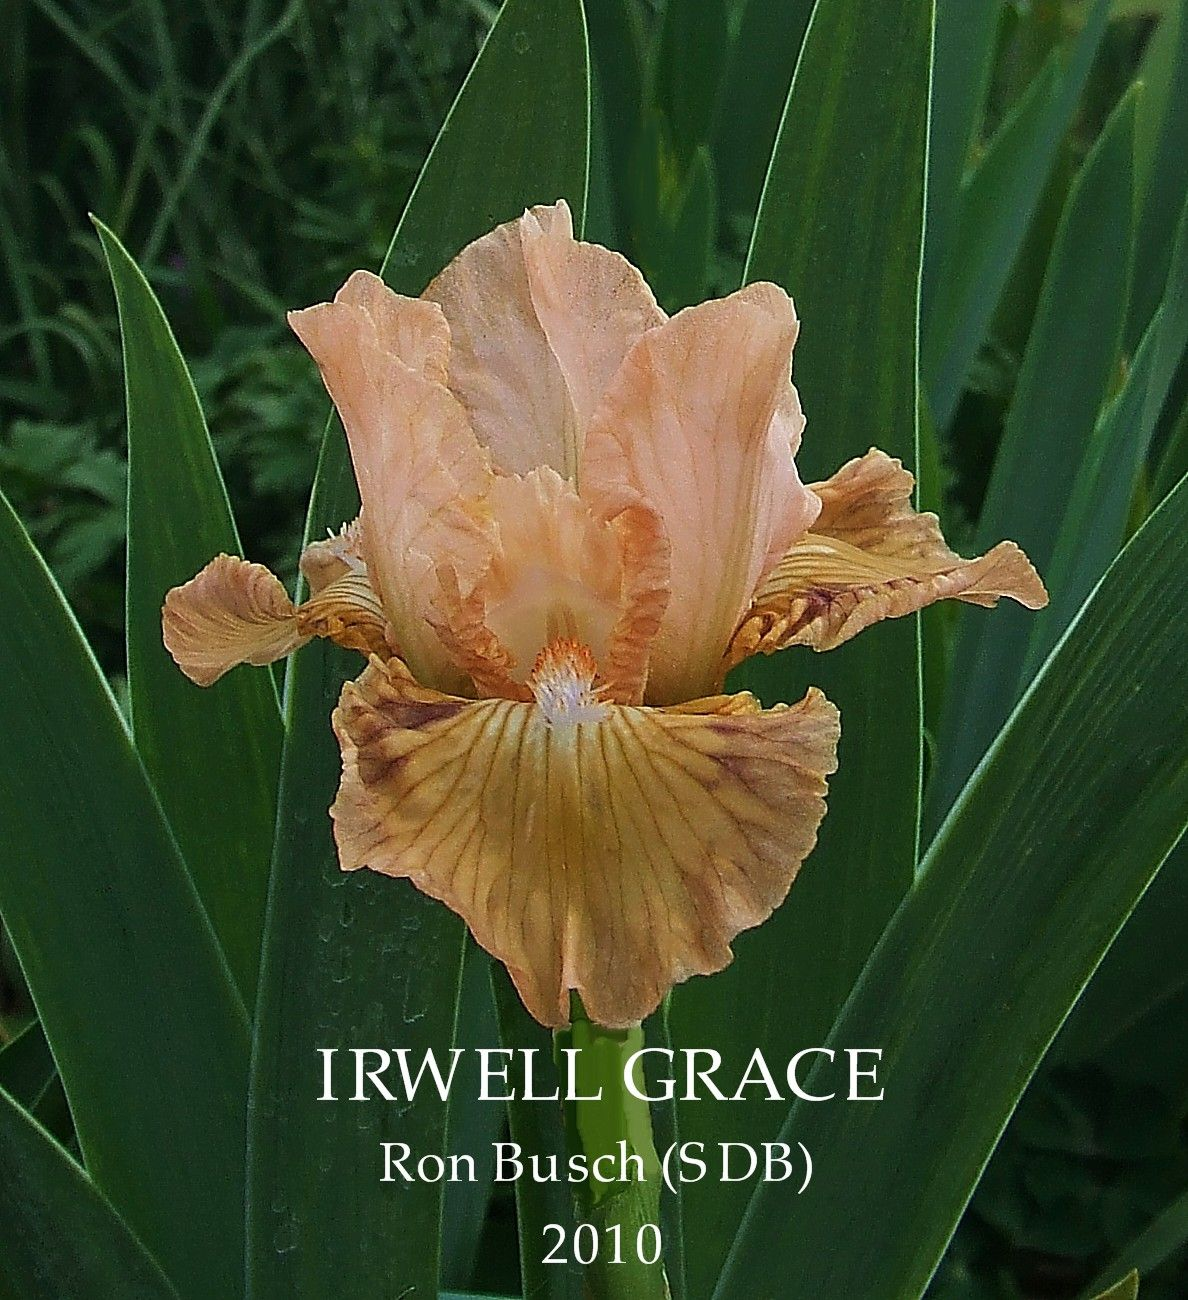 Standard Dwarf Bearded Iris Irwell Grace Flowering For Me Today Standards Painted A Bright Blended Salmon Pink That Complime Dwarf Beard Bearded Iris